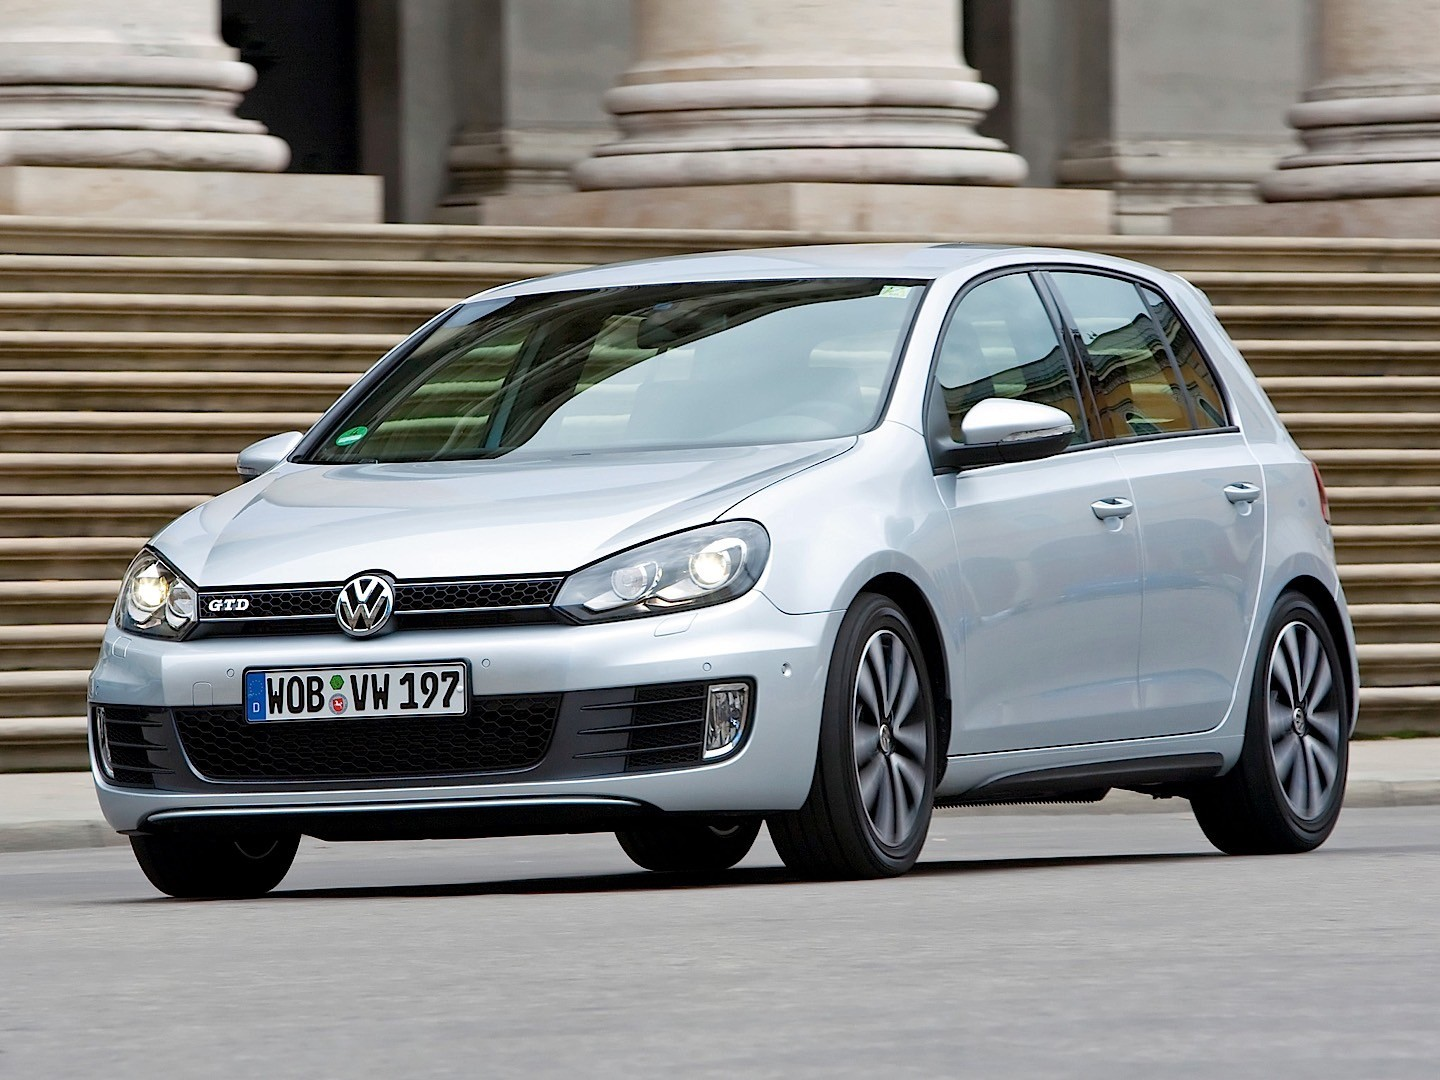 VOLKSWAGEN Golf GTD 5 Doors - 2009, 2010, 2011, 2012, 2013 ...